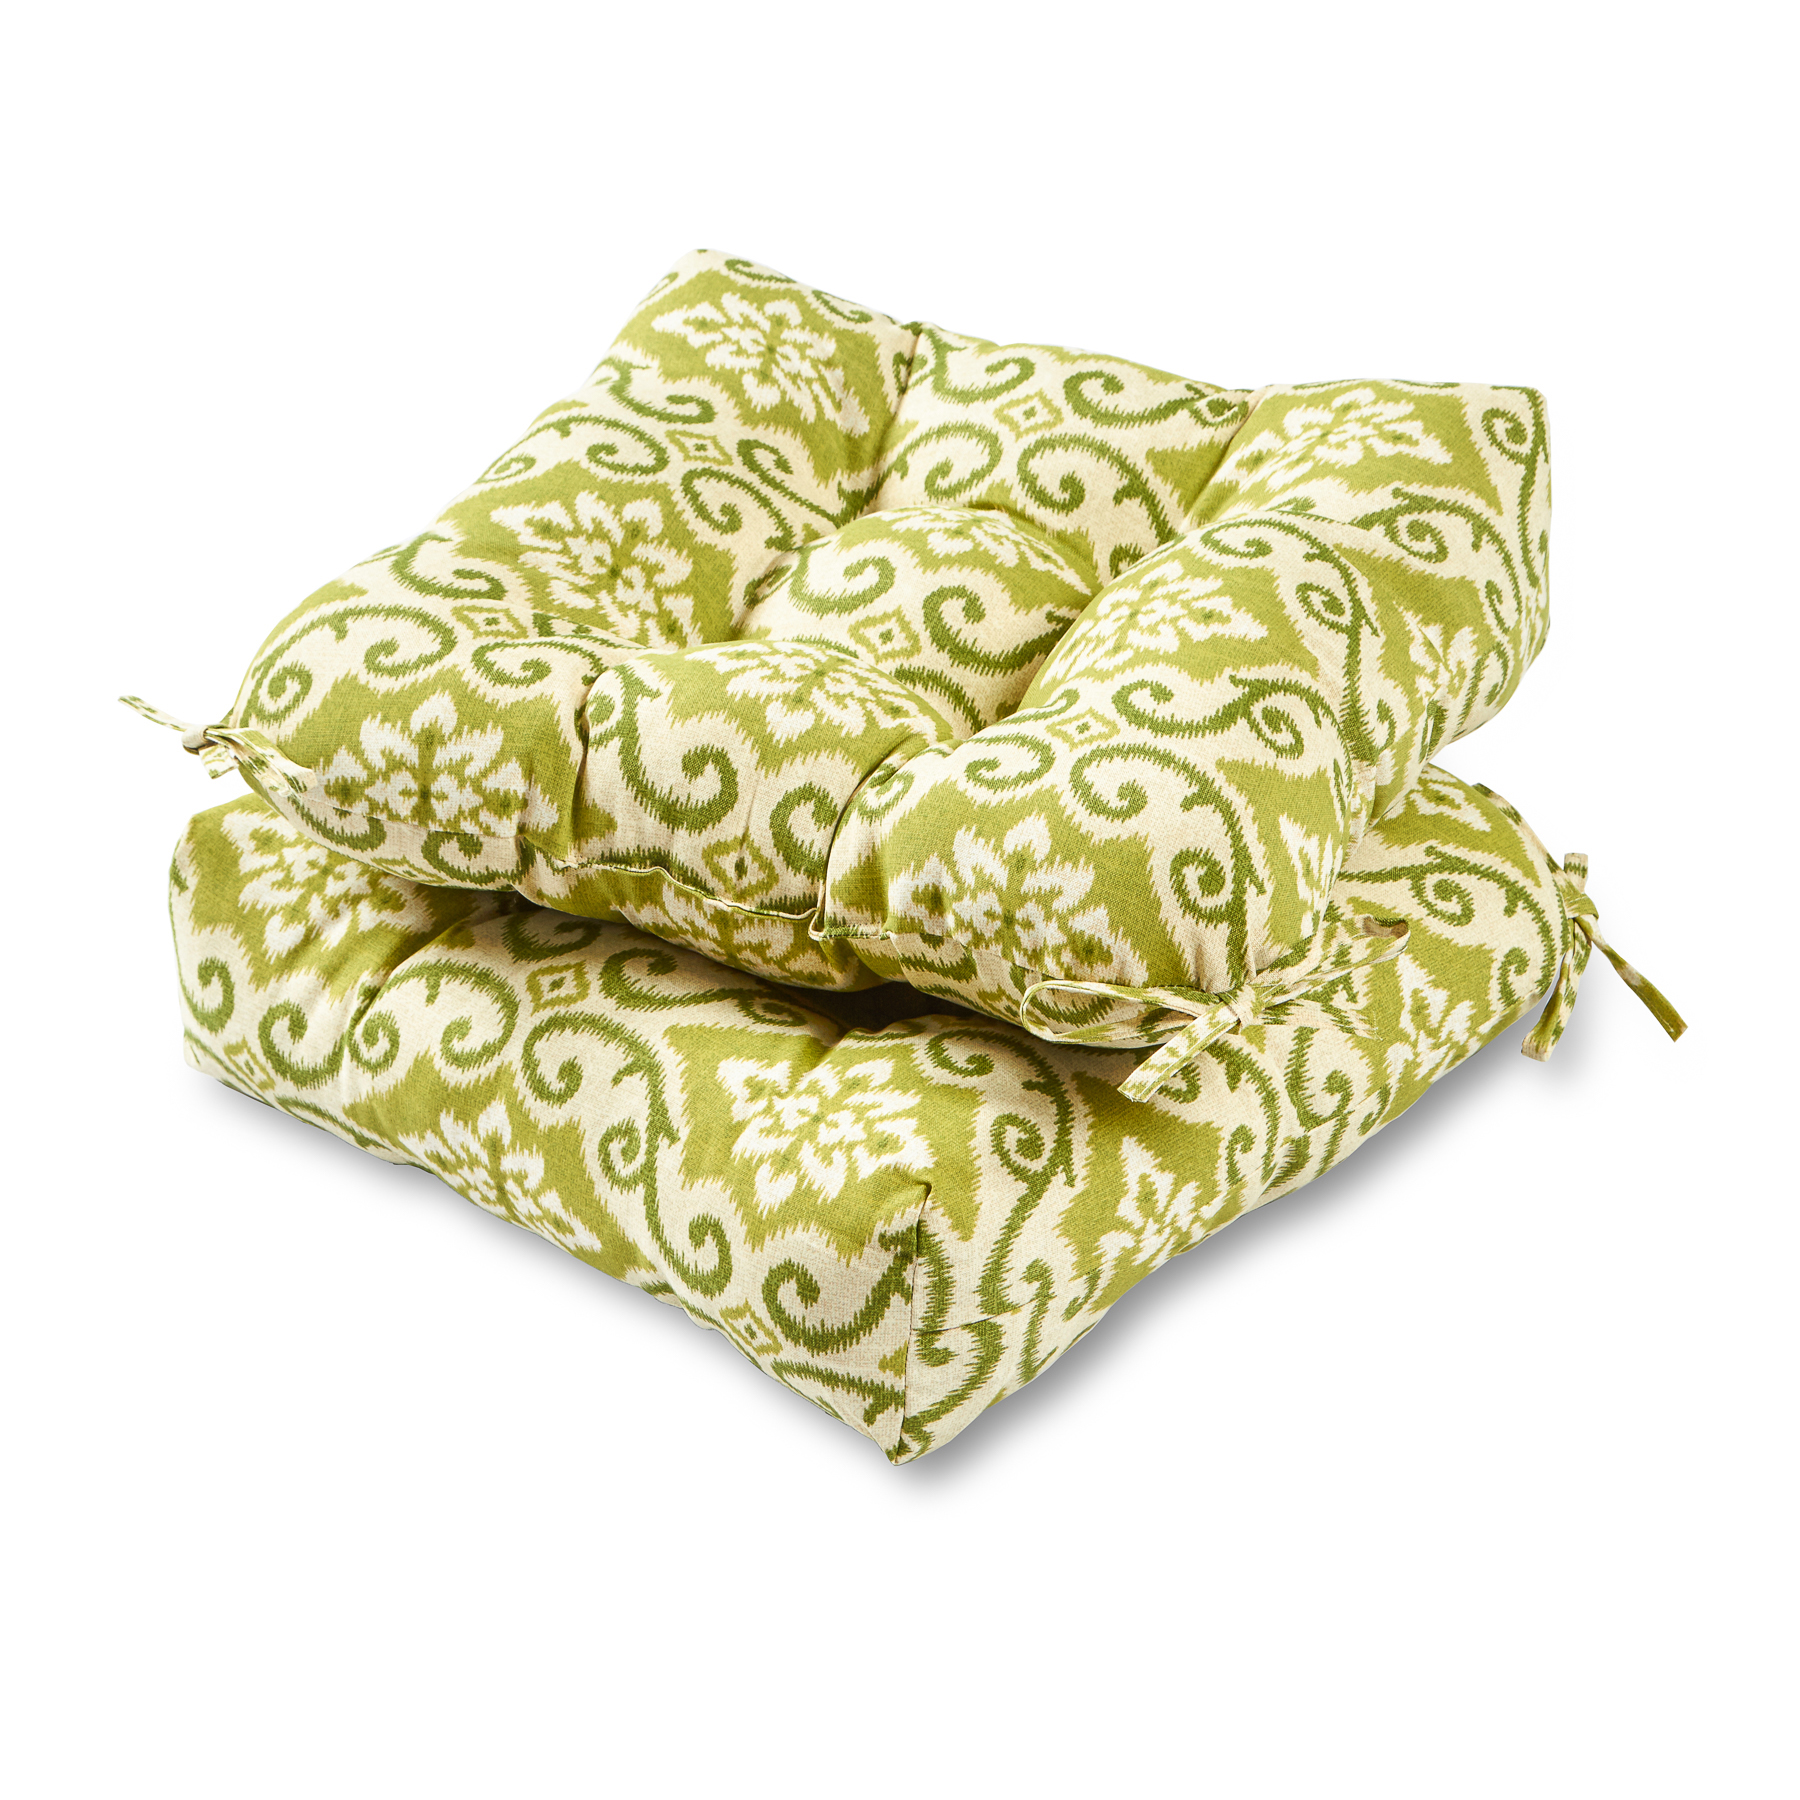 Greendale Home Fashions Green Ikat 20-inch Outdoor Chair Cushion, Set of 2